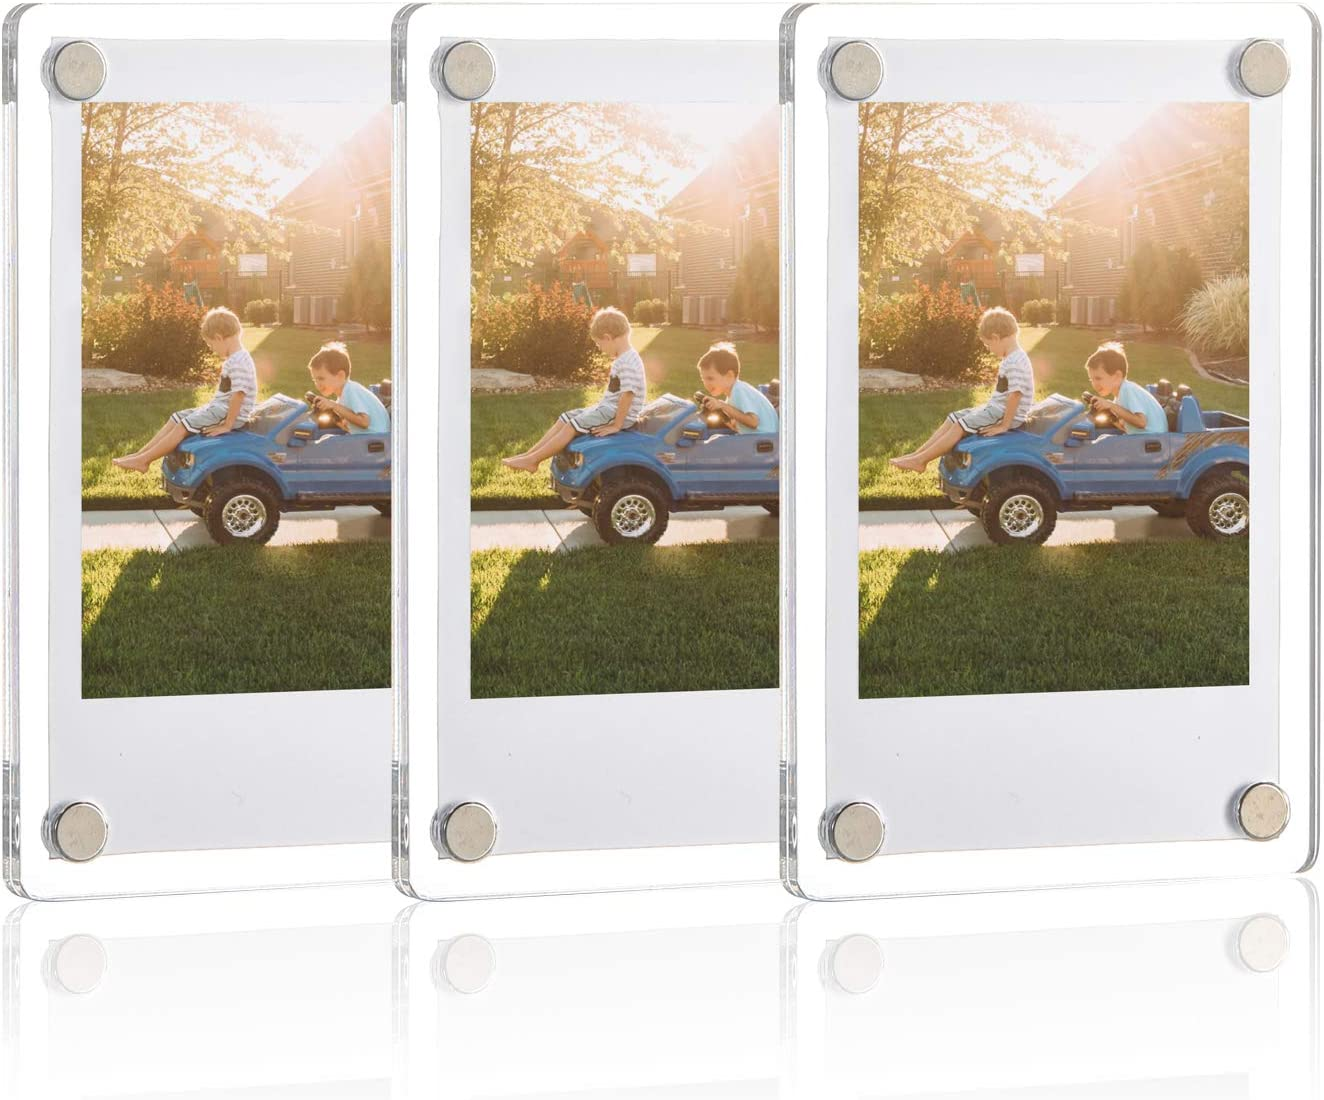 ONE WALL Acrylic Fridge Magnetic Frame, Double Sided Photo Refrigerator Magnet Picture Frame for Fujifilm Instax Mini, 2.36 x 3.54 Inch, Pack of 3